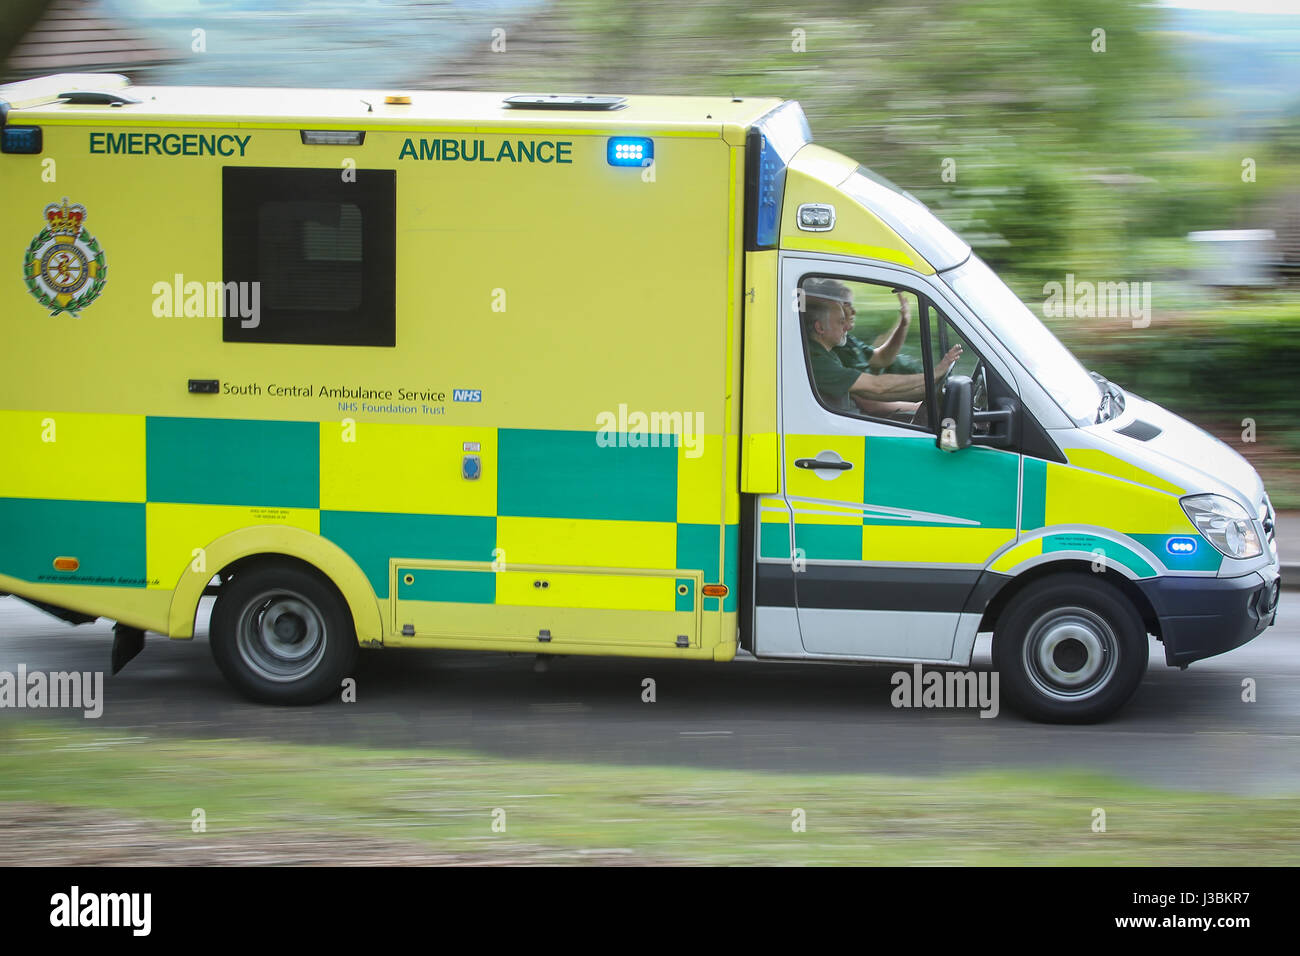 A South Central Ambulance rushing to an emergency with blue lights on - Stock Image